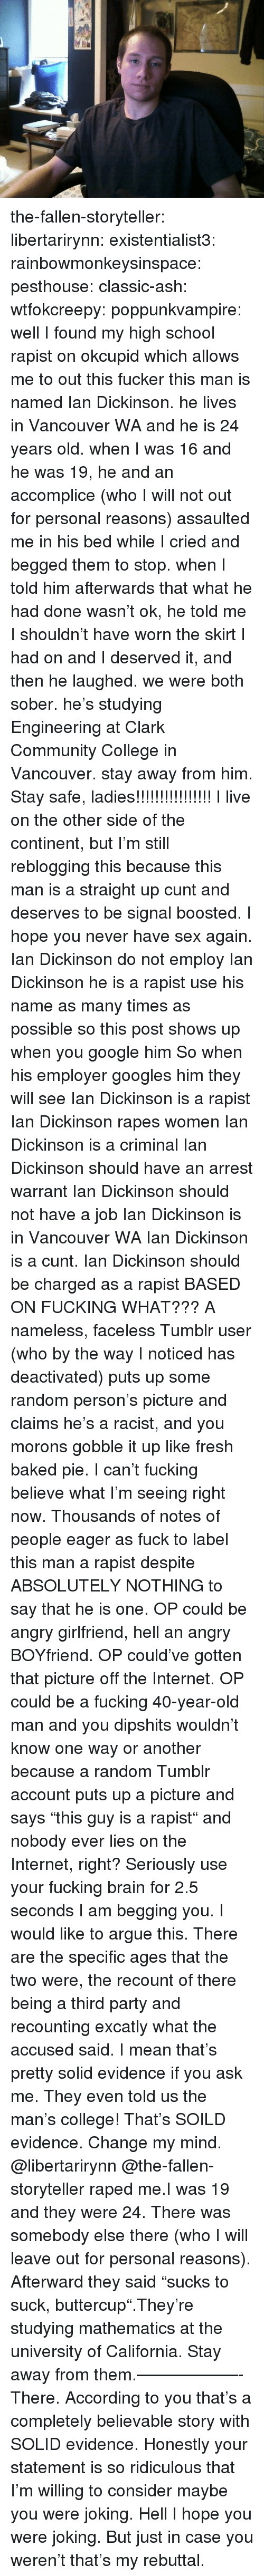 "Arguing, Ash, and Baked: the-fallen-storyteller: libertarirynn:  existentialist3:  rainbowmonkeysinspace:   pesthouse:  classic-ash:  wtfokcreepy:  poppunkvampire:  well I found my high school rapist on okcupid which allows me to out this fucker this man is named Ian Dickinson. he lives in Vancouver WA and he is 24 years old. when I was 16 and he was 19, he and an accomplice (who I will not out for personal reasons) assaulted me in his bed while I cried and begged them to stop. when I told him afterwards that what he had done wasn't ok, he told me I shouldn't have worn the skirt I had on and I deserved it, and then he laughed. we were both sober. he's studying Engineering at Clark Community College in Vancouver. stay away from him.  Stay safe, ladies!!!!!!!!!!!!!!!!  I live on the other side of the continent, but I'm still reblogging this because this man is a straight up cunt and deserves to be signal boosted. I hope you never have sex again.  Ian Dickinson do not employ Ian Dickinson he is a rapist use his name as many times as possible so this post shows up when you google him So when his employer googles him they will see Ian Dickinson is a rapist Ian Dickinson rapes women Ian Dickinson is a criminal Ian Dickinson should have an arrest warrant Ian Dickinson should not have a job Ian Dickinson is in Vancouver WA   Ian Dickinson is a cunt.   Ian Dickinson should be charged as a rapist  BASED ON FUCKING WHAT??? A nameless, faceless Tumblr user (who by the way I noticed has deactivated) puts up some random person's picture and claims he's a racist, and you morons gobble it up like fresh baked pie. I can't fucking believe what I'm seeing right now. Thousands of notes of people eager as fuck to label this man a rapist despite ABSOLUTELY NOTHING to say that he is one. OP could be angry girlfriend, hell an angry BOYfriend. OP could've gotten that picture off the Internet. OP could be a fucking 40-year-old man and you dipshits wouldn't know one way or another because a random Tumblr account puts up a picture and says ""this guy is a rapist"" and nobody ever lies on the Internet, right? Seriously use your fucking brain for 2.5 seconds I am begging you.  I would like to argue this. There are the specific ages that the two were, the recount of there being a third party and recounting excatly what the accused said.  I mean that's pretty solid evidence if you ask me. They even told us the man's college! That's SOILD evidence. Change my mind. @libertarirynn  @the-fallen-storyteller raped me.I was 19 and they were 24. There was somebody else there (who I will leave out for personal reasons). Afterward they said ""sucks to suck, buttercup"".They're studying mathematics at the university of California. Stay away from them.——————-There. According to you that's a completely believable story with SOLID evidence. Honestly your statement is so ridiculous that I'm willing to consider maybe you were joking. Hell I hope you were joking. But just in case you weren't that's my rebuttal."